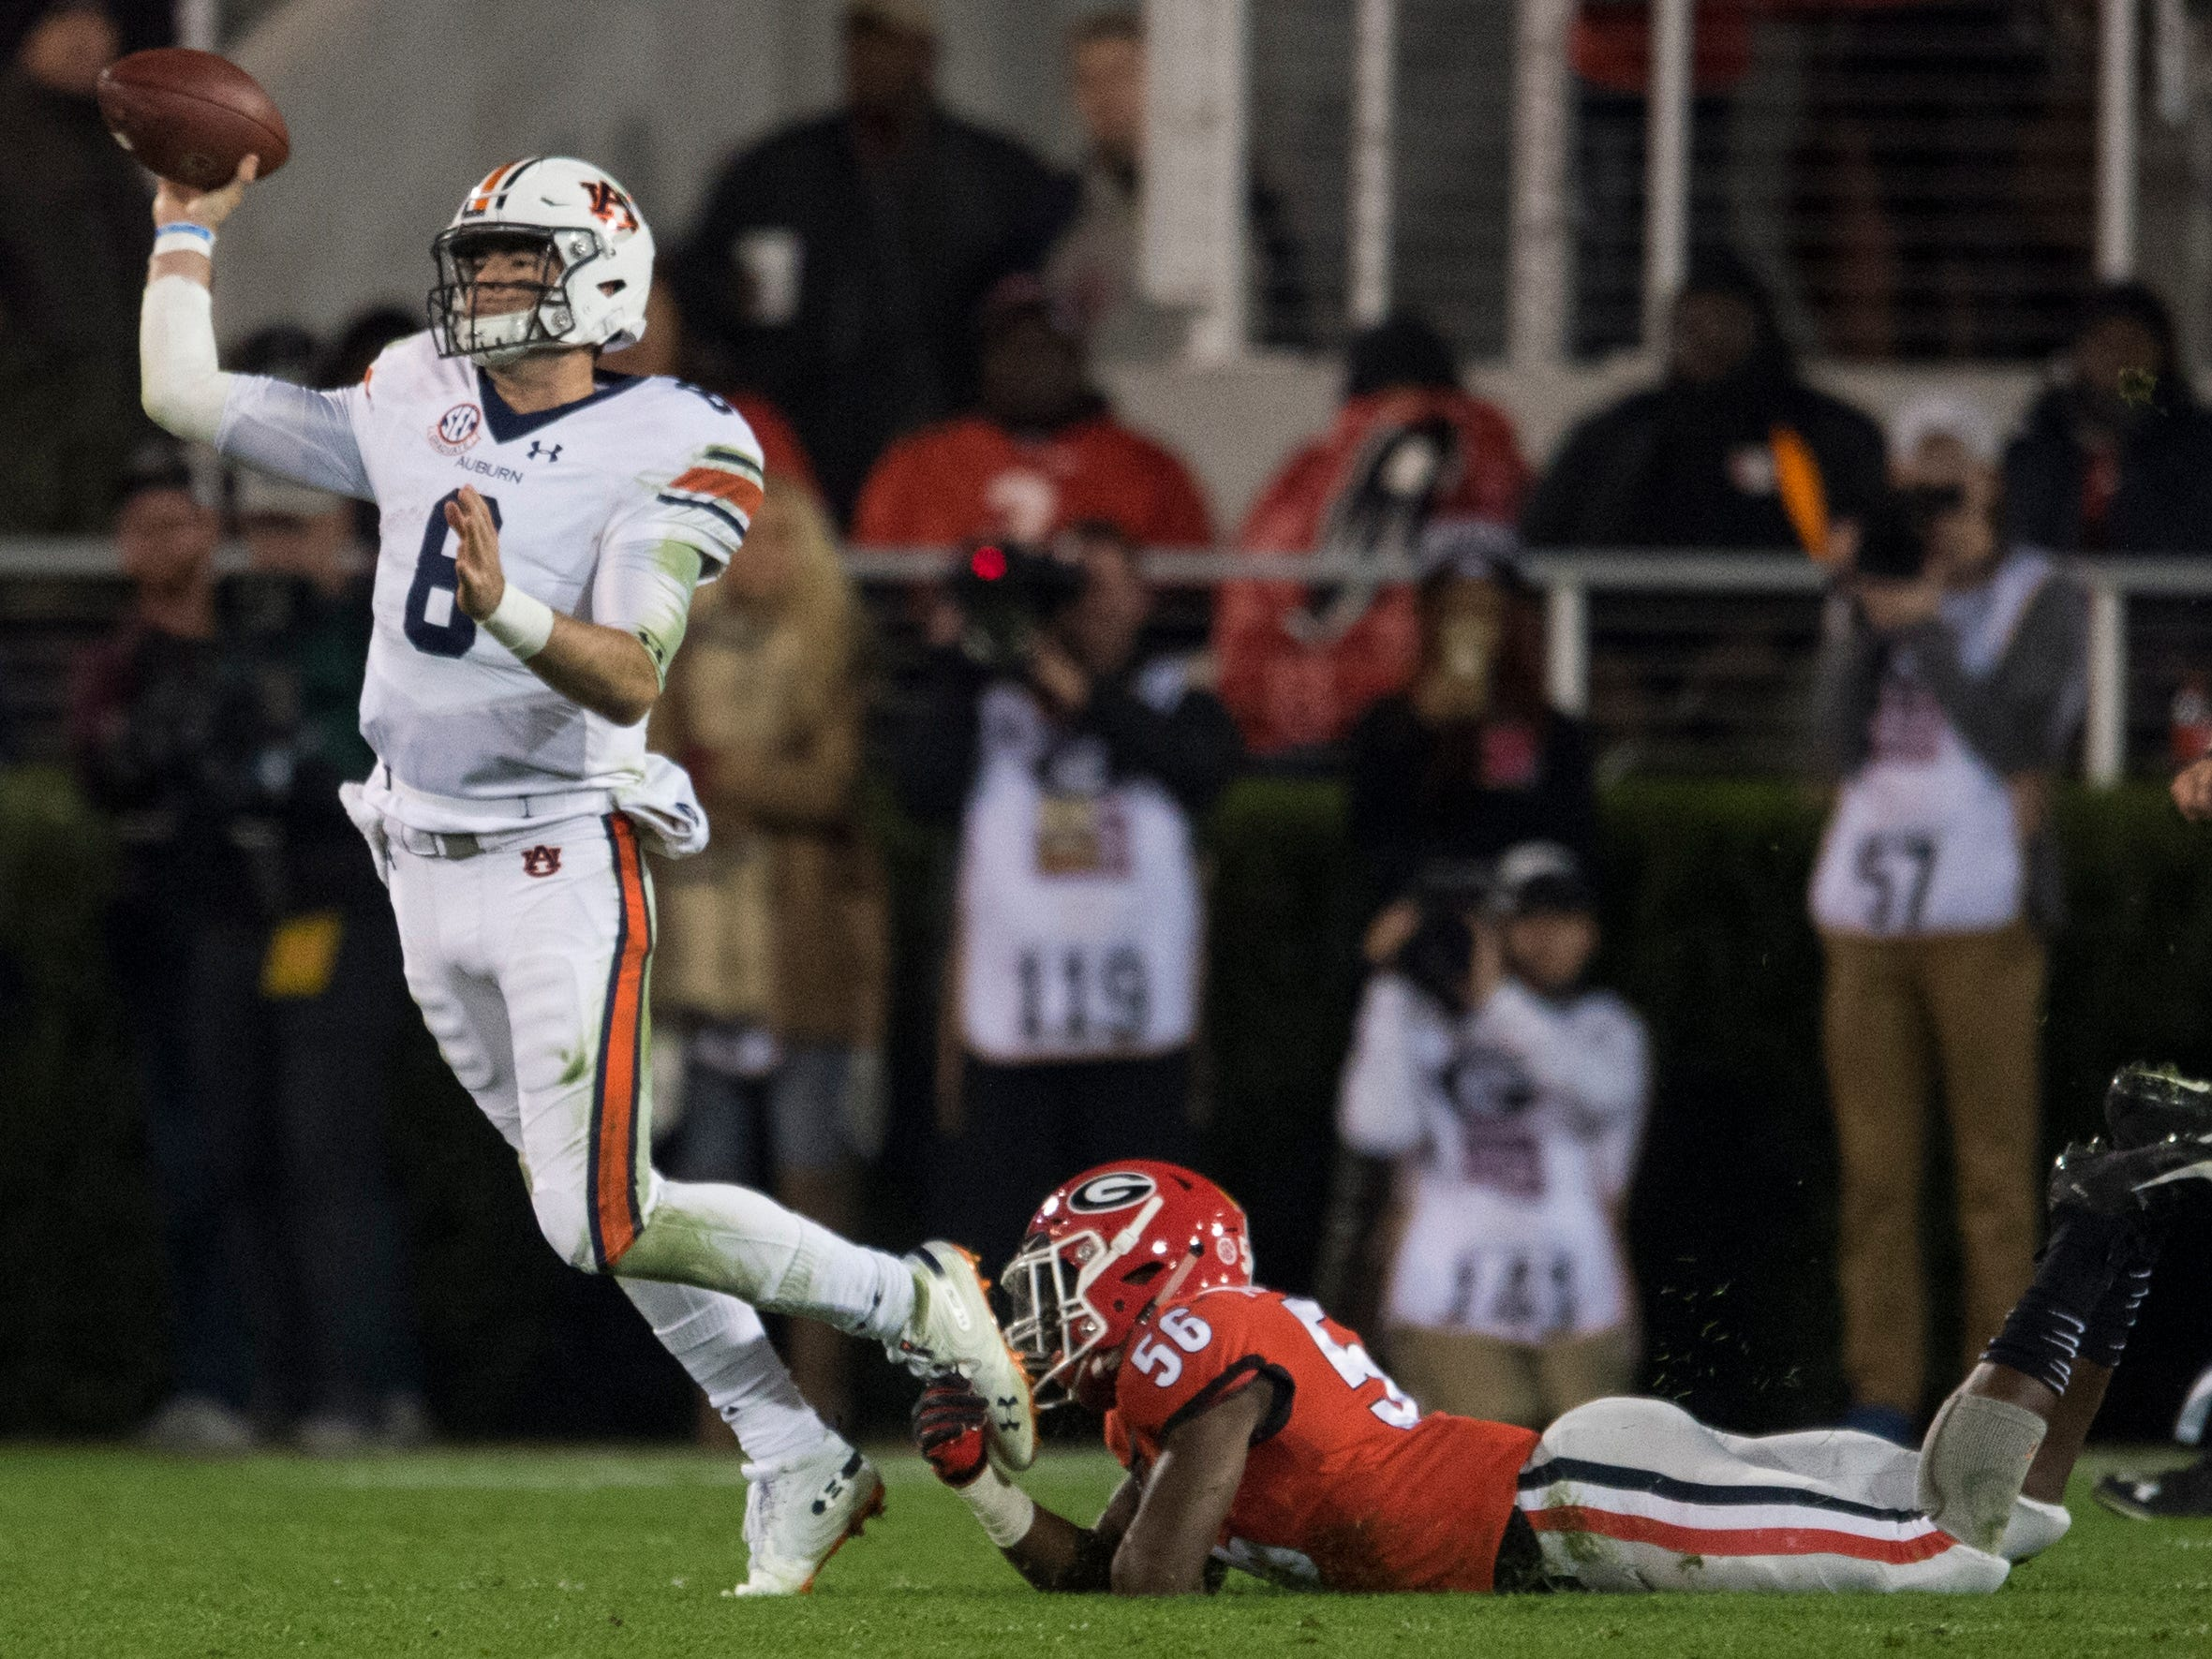 Auburn quarterback Jarrett Stidham (8) is tripped up by Georgia linebacker Adam Anderson (56) as he throws the ball at Sanford Stadium in Athens, Ga., on Saturday, Nov. 10, 2018. Georgia defeated Auburn 27-10.